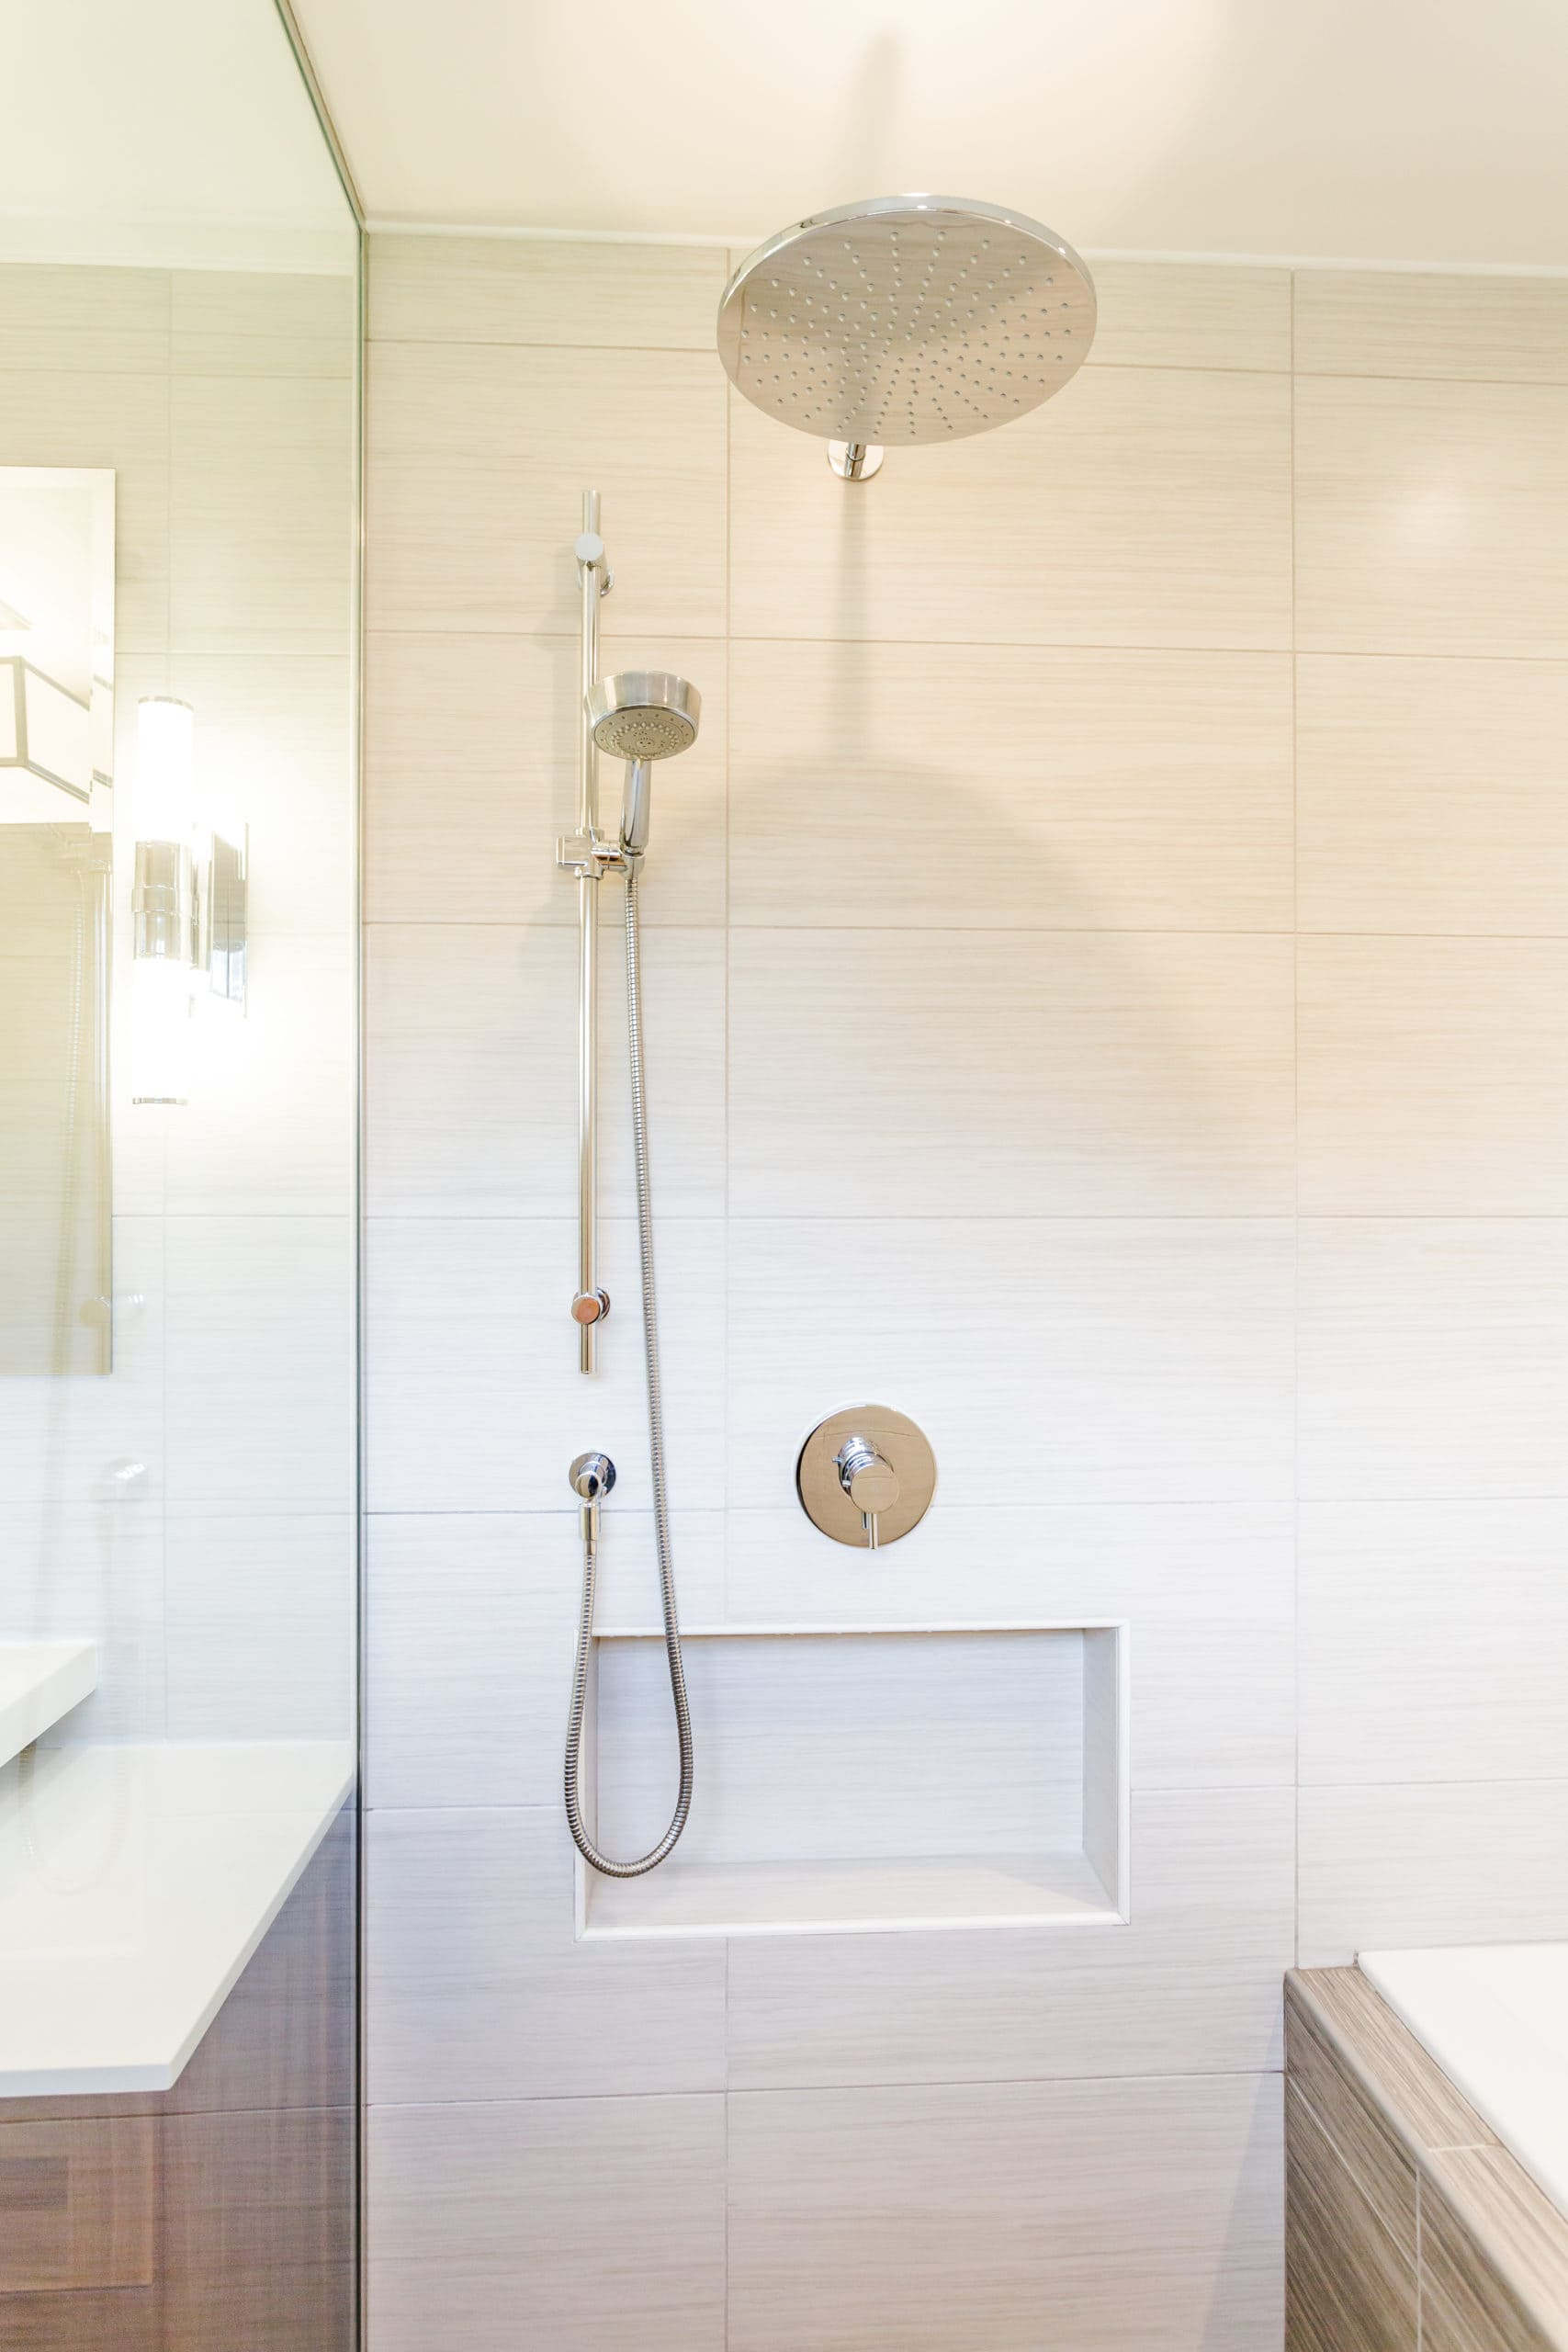 Bright shower with a large shower head